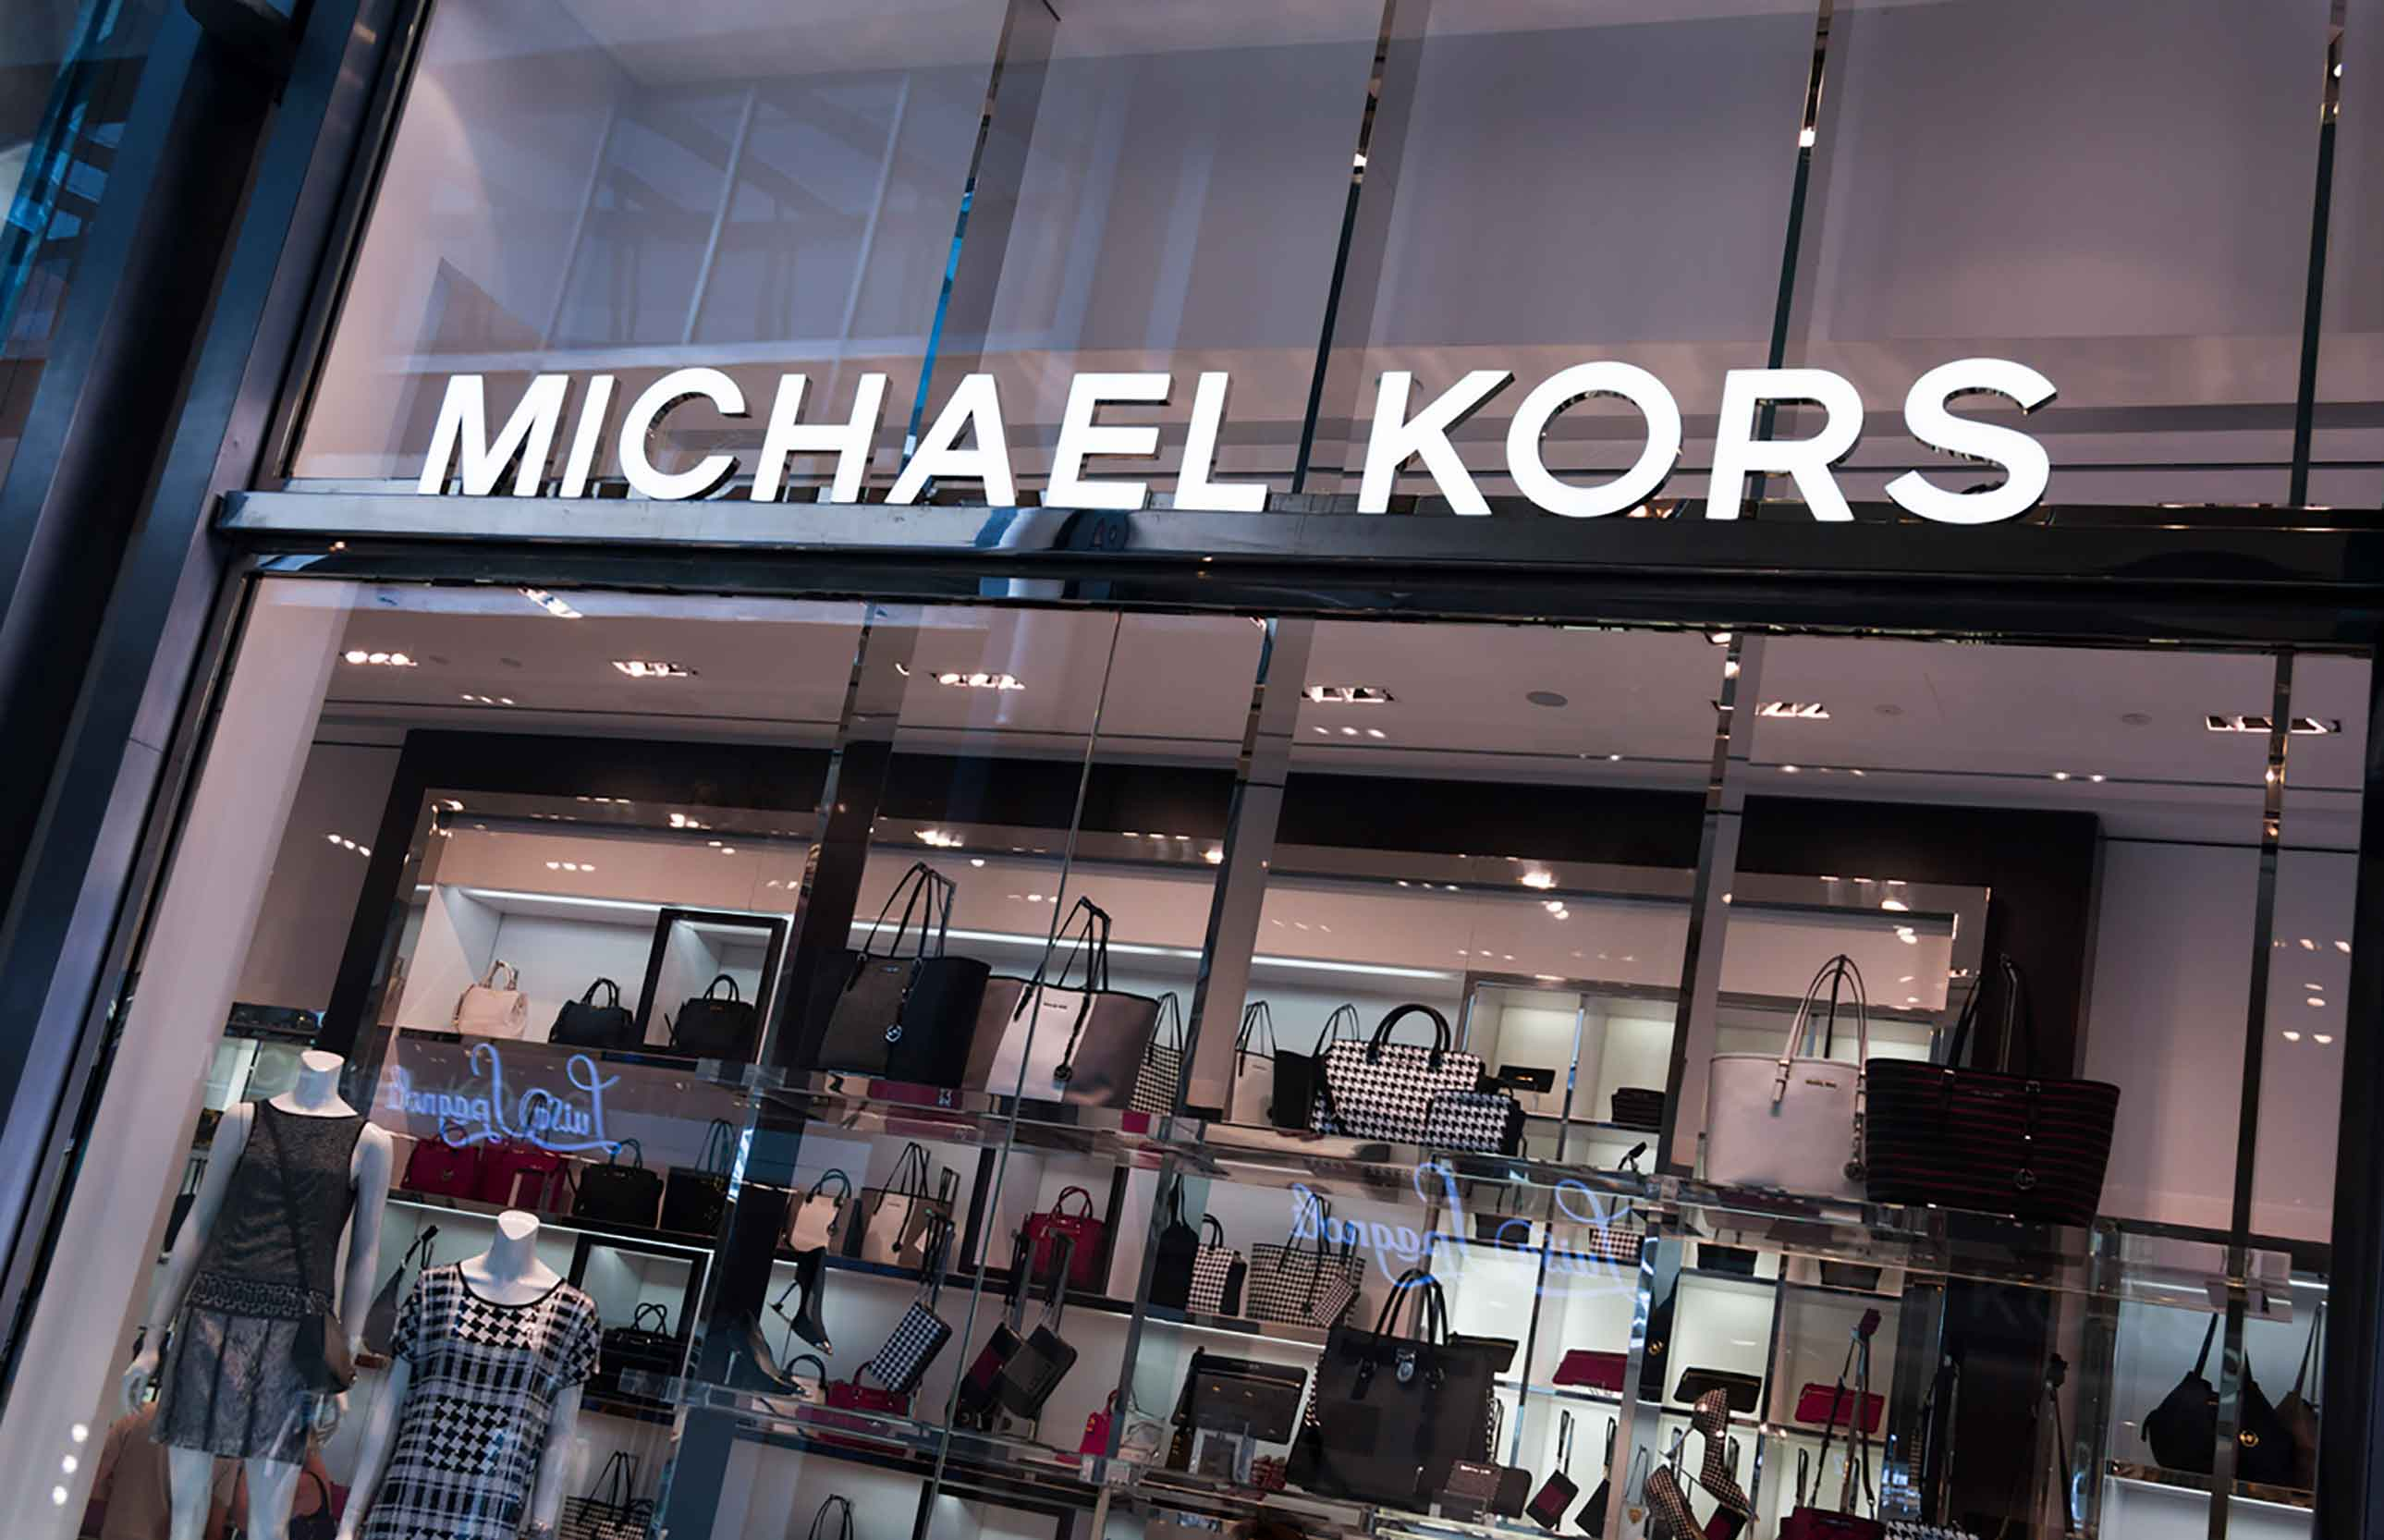 Try these tactics the next time you simply must have the latest Michael Kors offering.